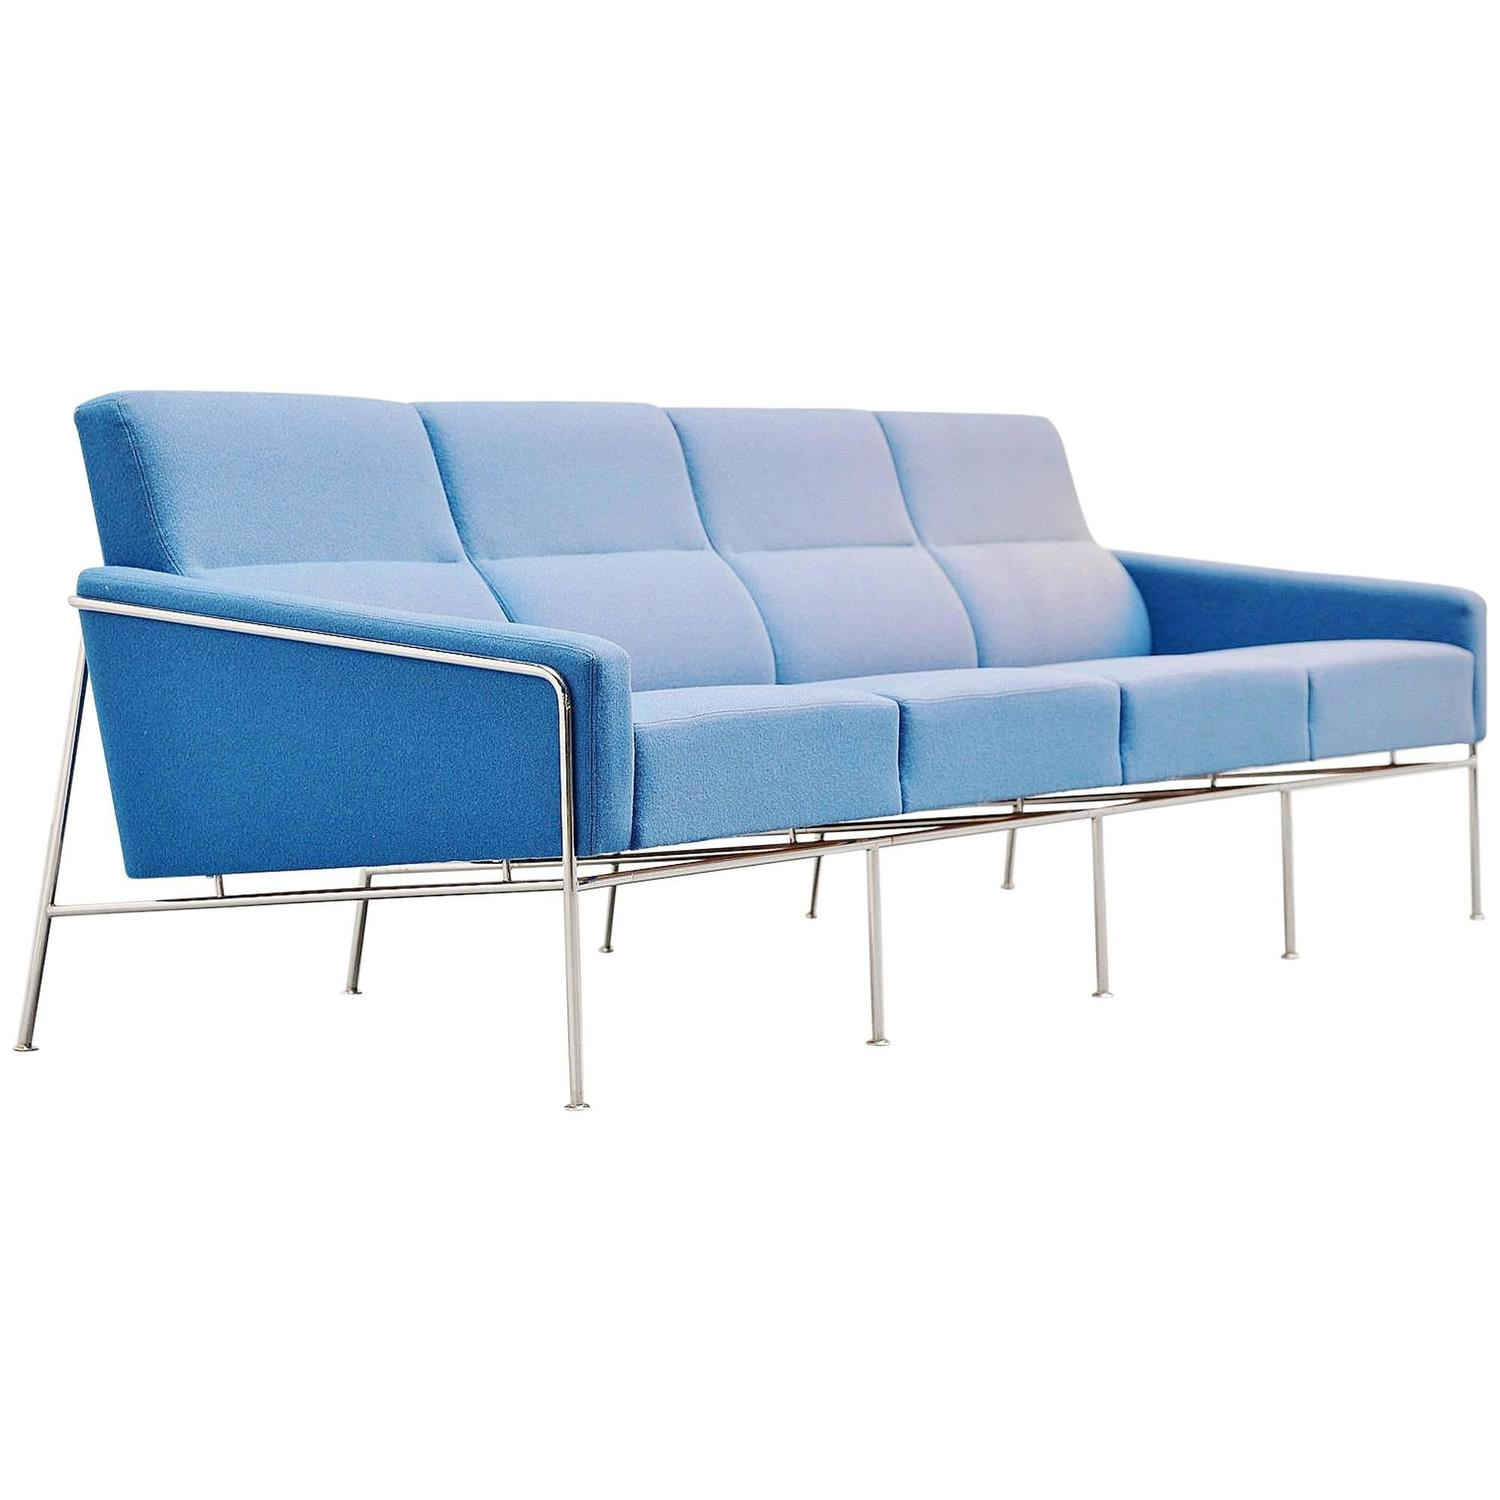 Mayor Sofa By Arne Jacobsen Hausidee